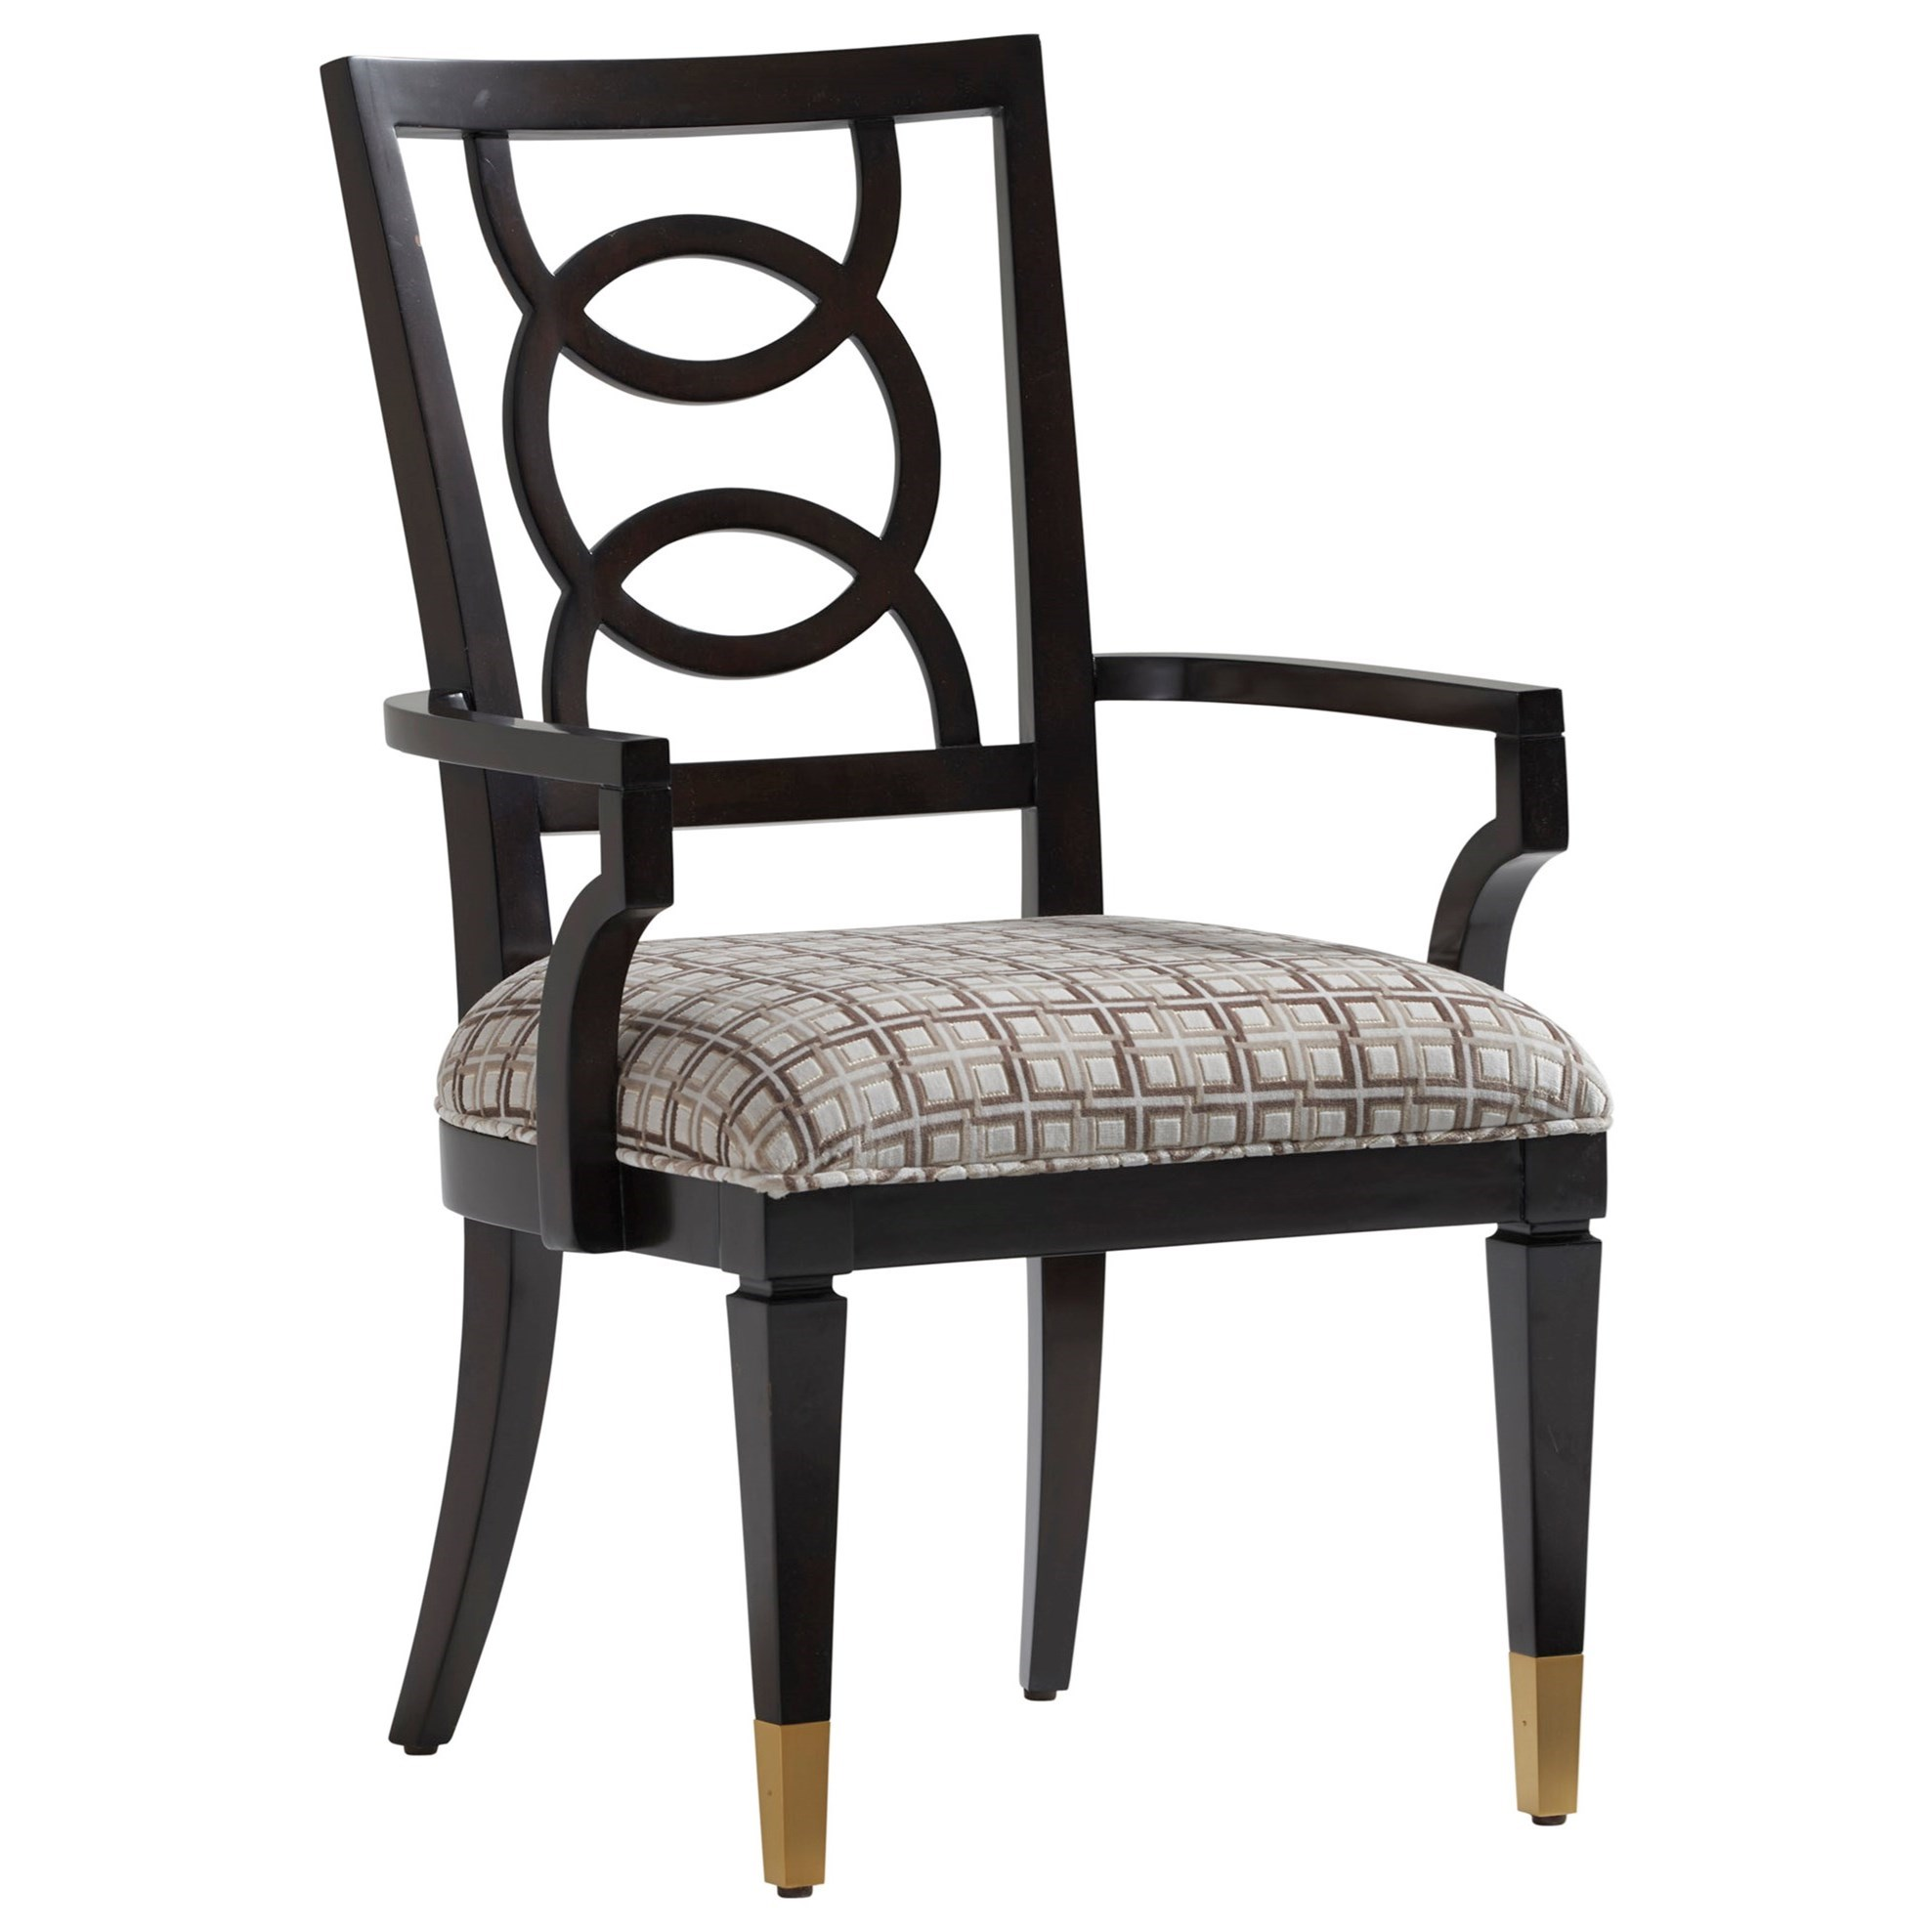 Carlyle Pierce Upholstered Arm Chair - Custom by Lexington at Baer's Furniture